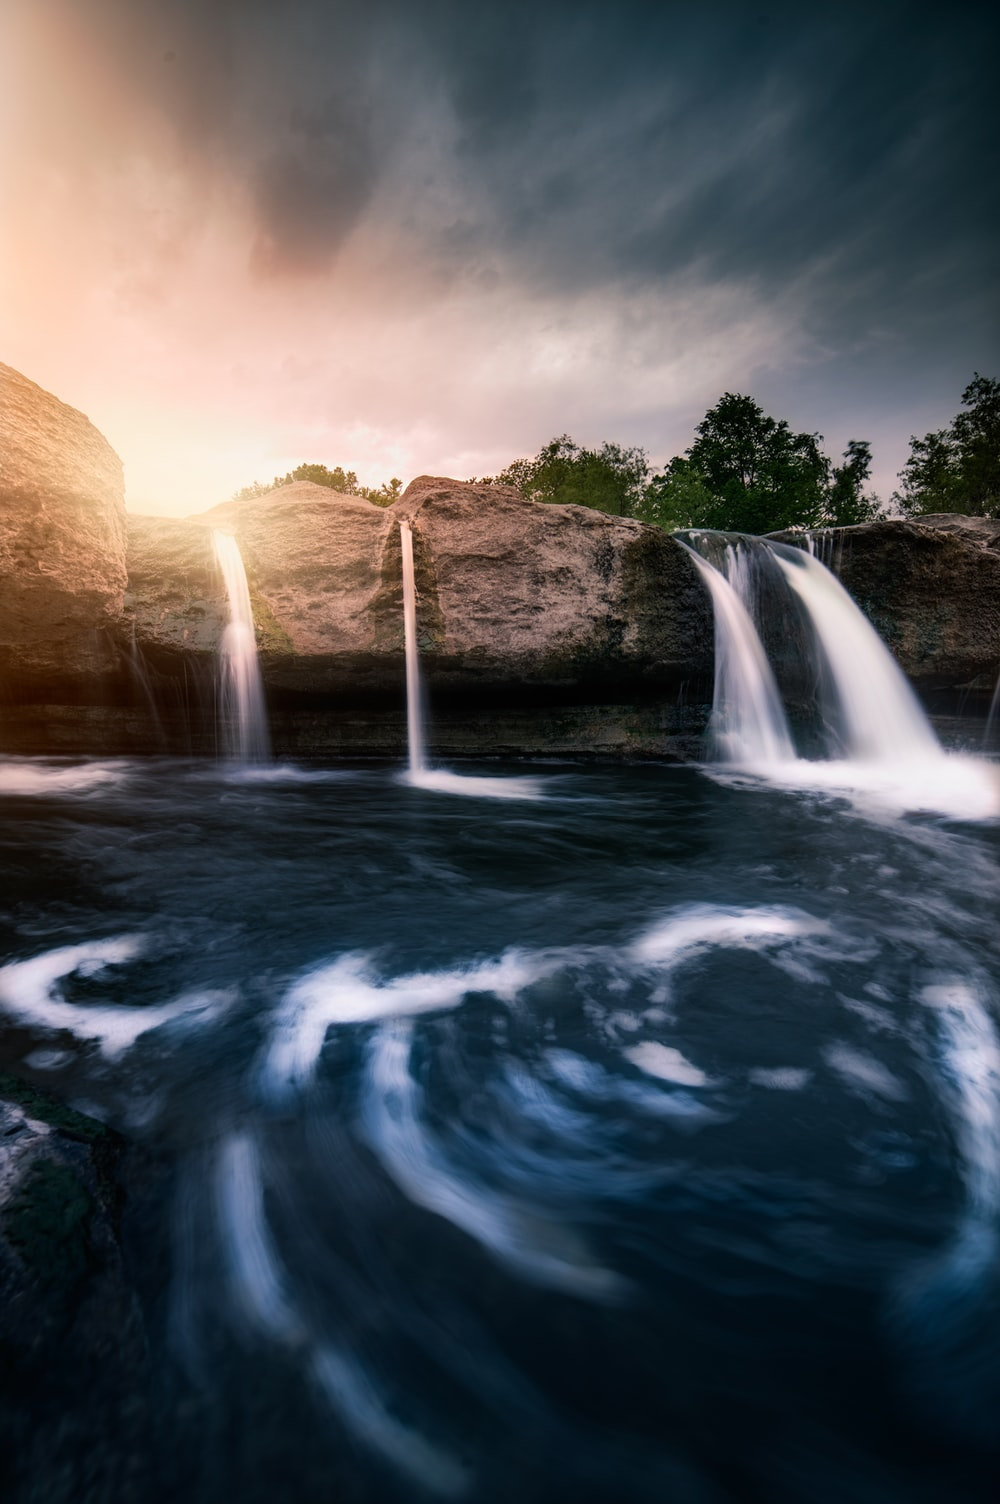 water falls under cloudy sky during daytime